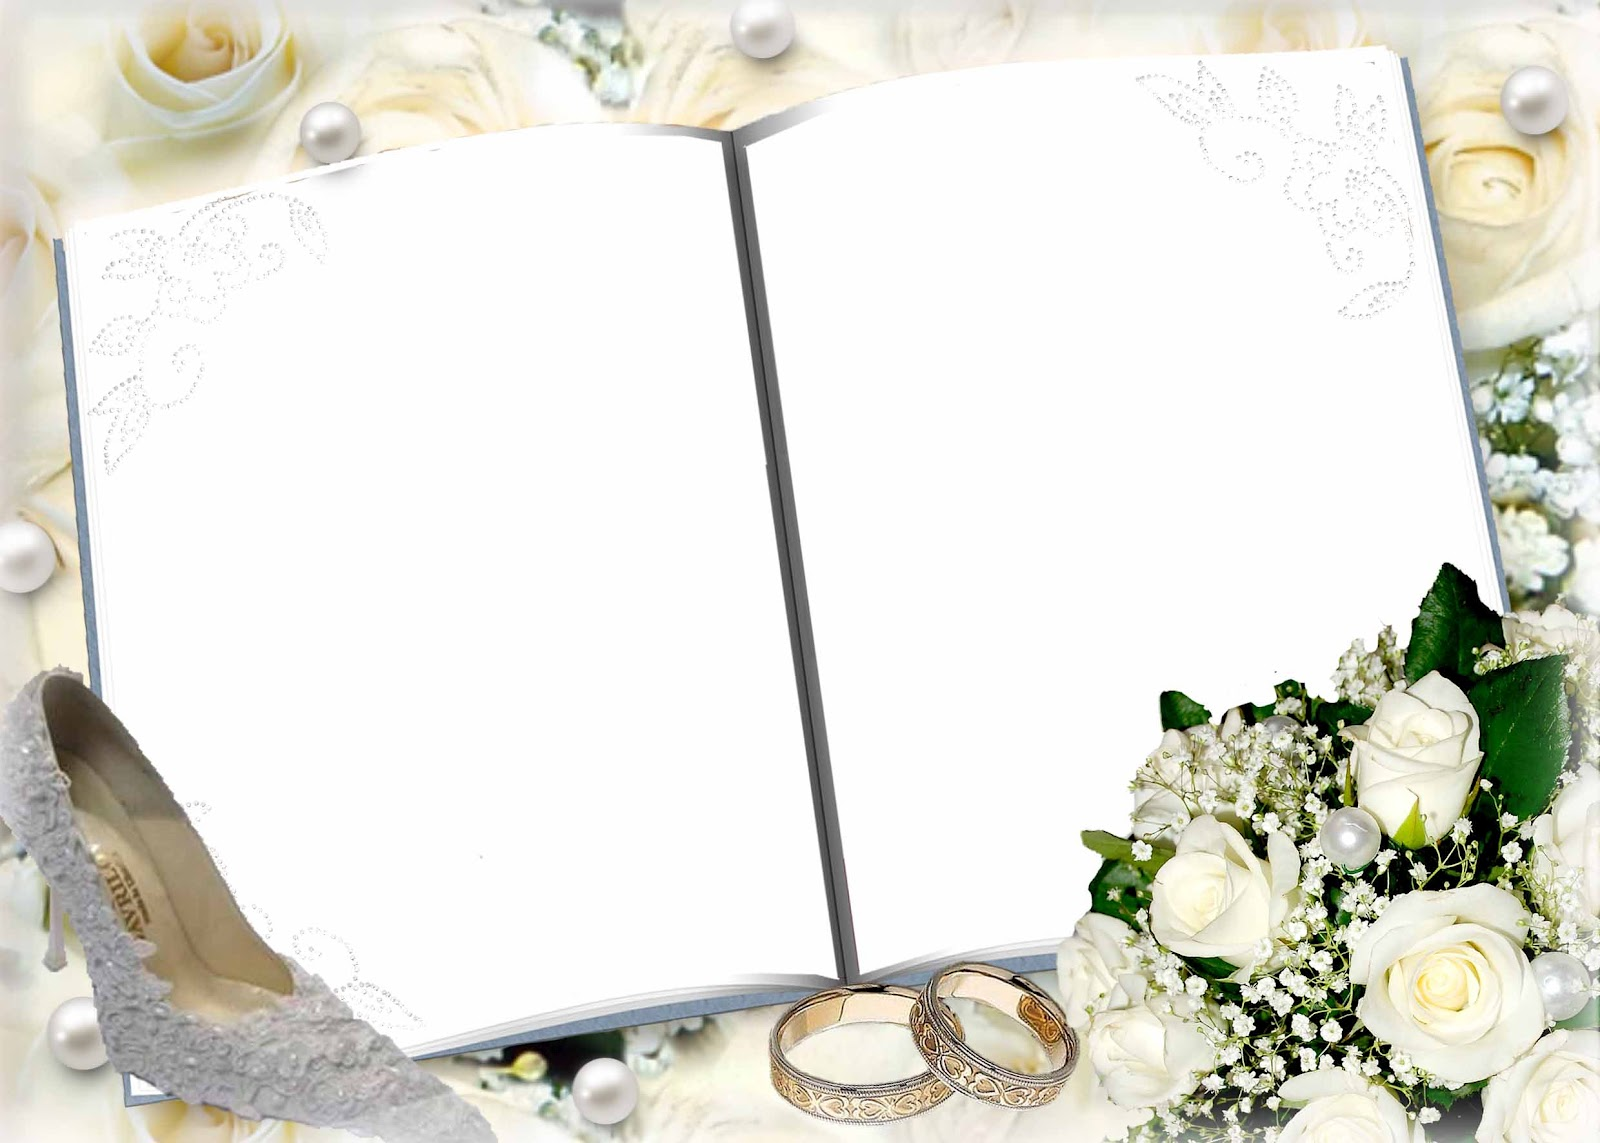 Wedding Frame Transparent PNG Pictures - Free Icons and PNG Backgrounds